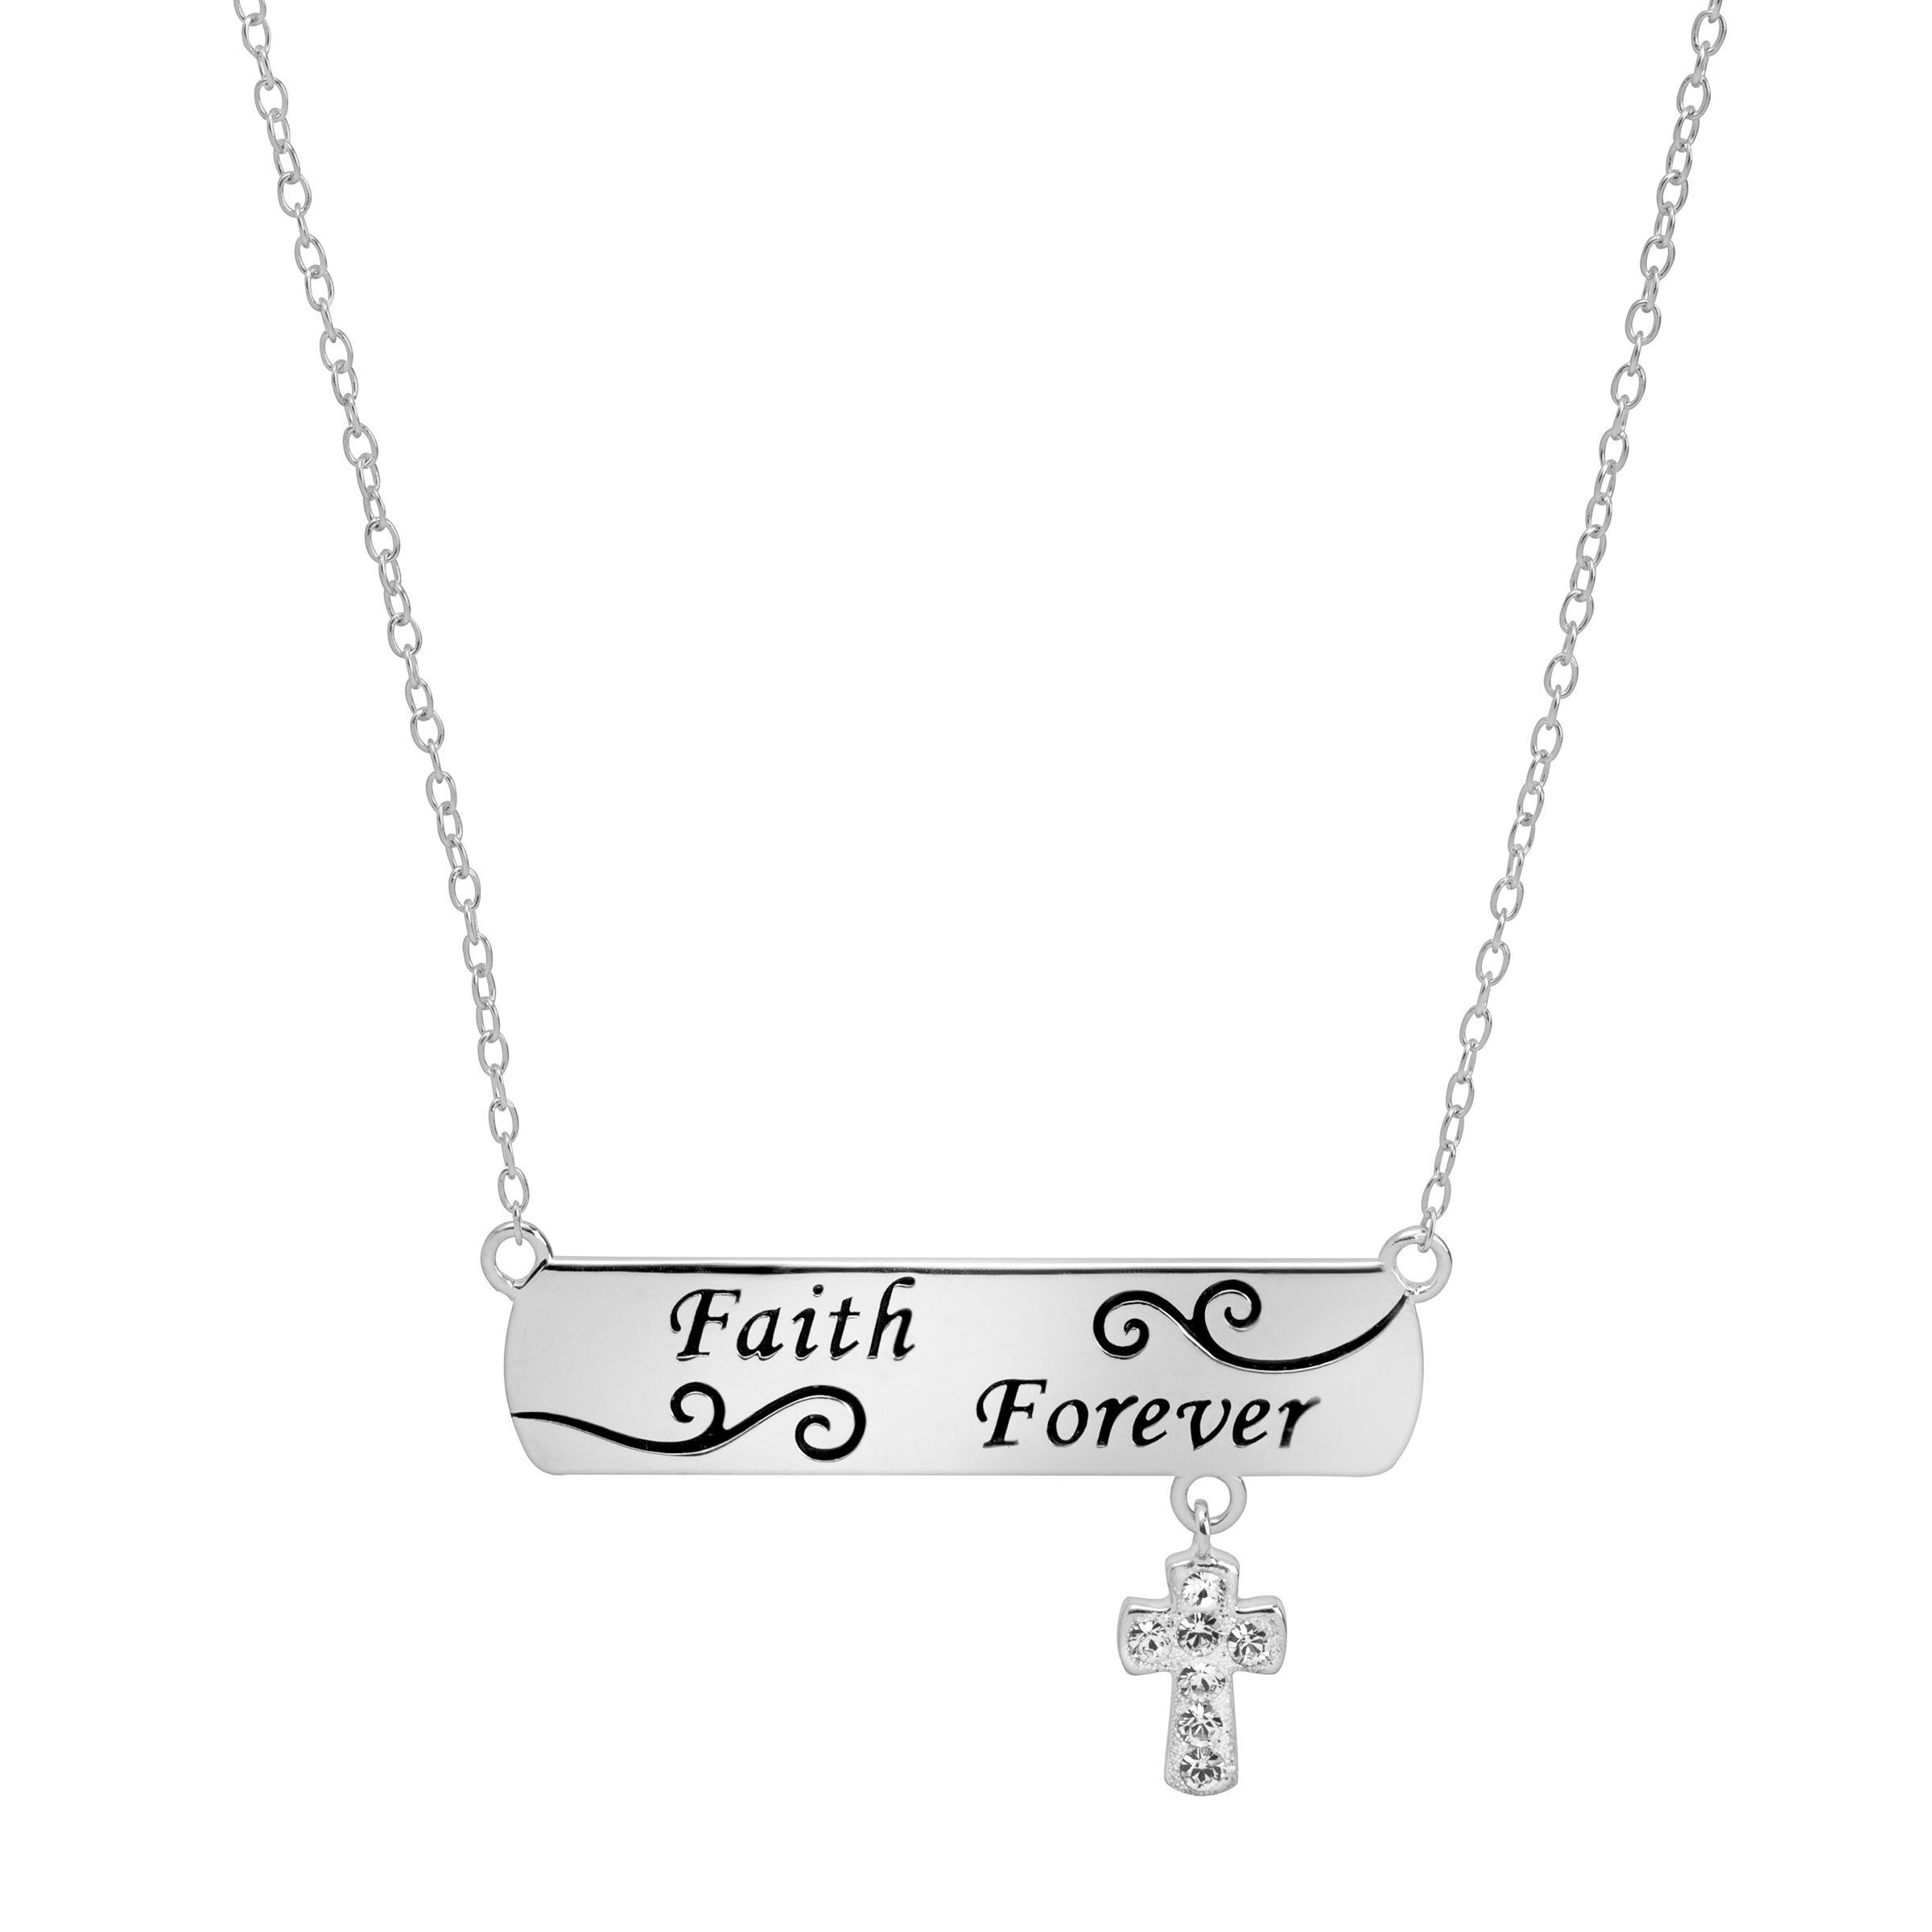 478e0432f Details about Crystaluxe Engraved Bar & Cross Necklace with Swarovski  Crystals Sterling Silver